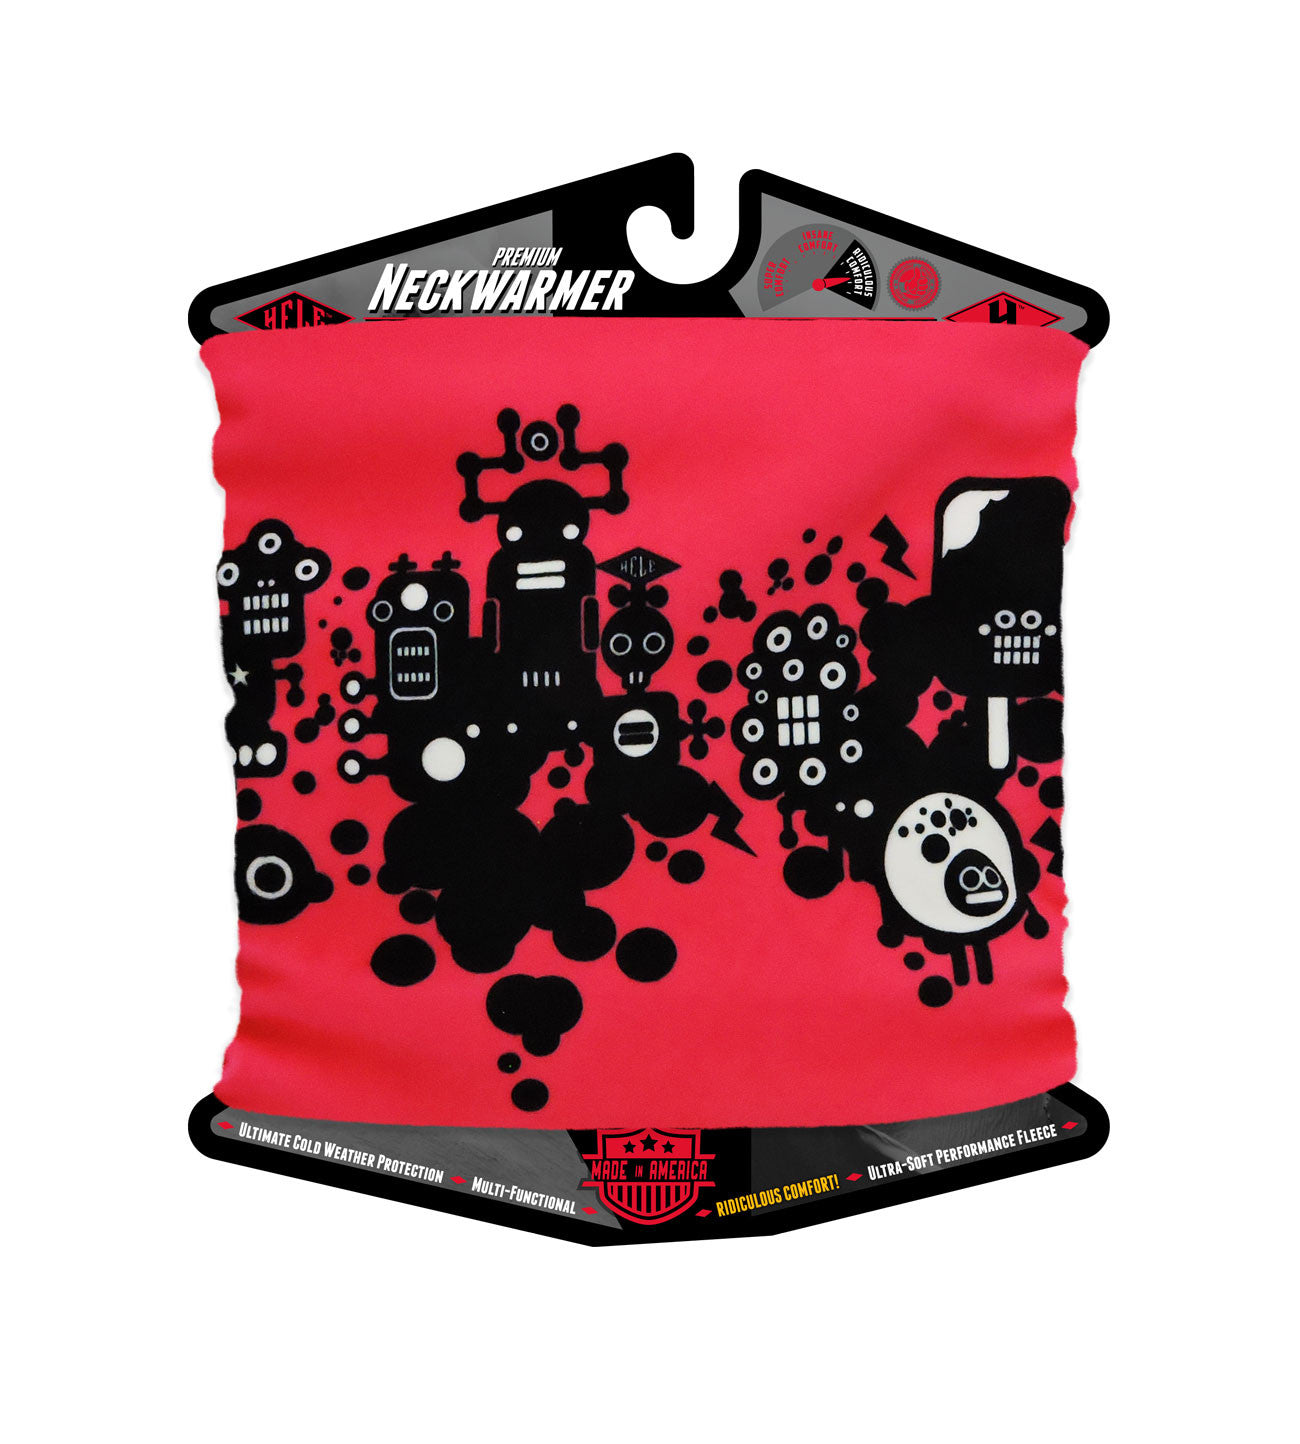 Mr Robotto Pink Neckwarmer